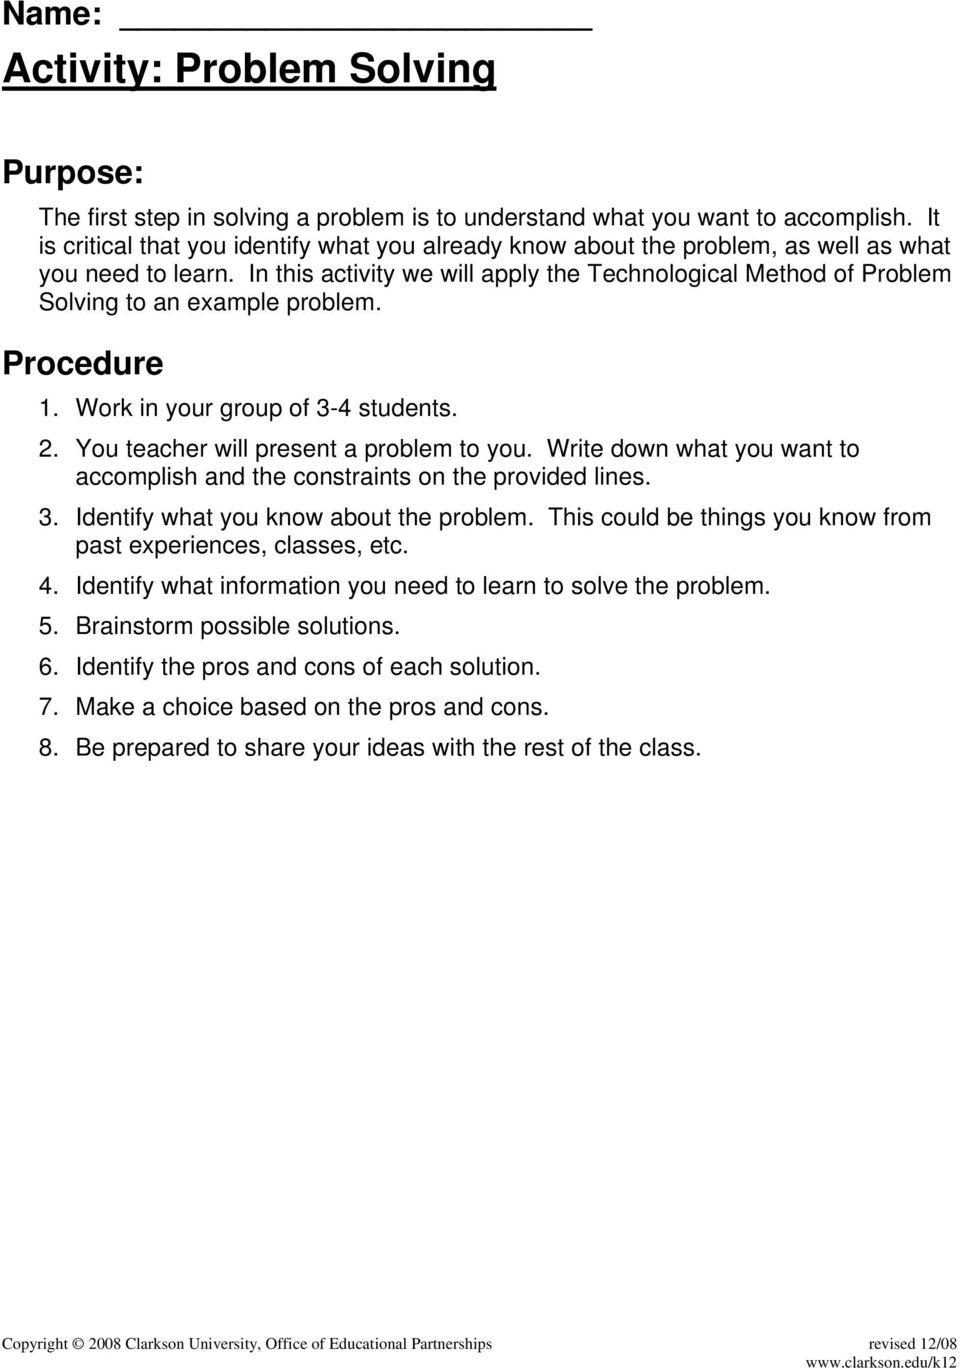 In this activity we will apply the Technological Method of Problem Solving to an example problem. Procedure 1. Work in your group of 3-4 students. 2. You teacher will present a problem to you.